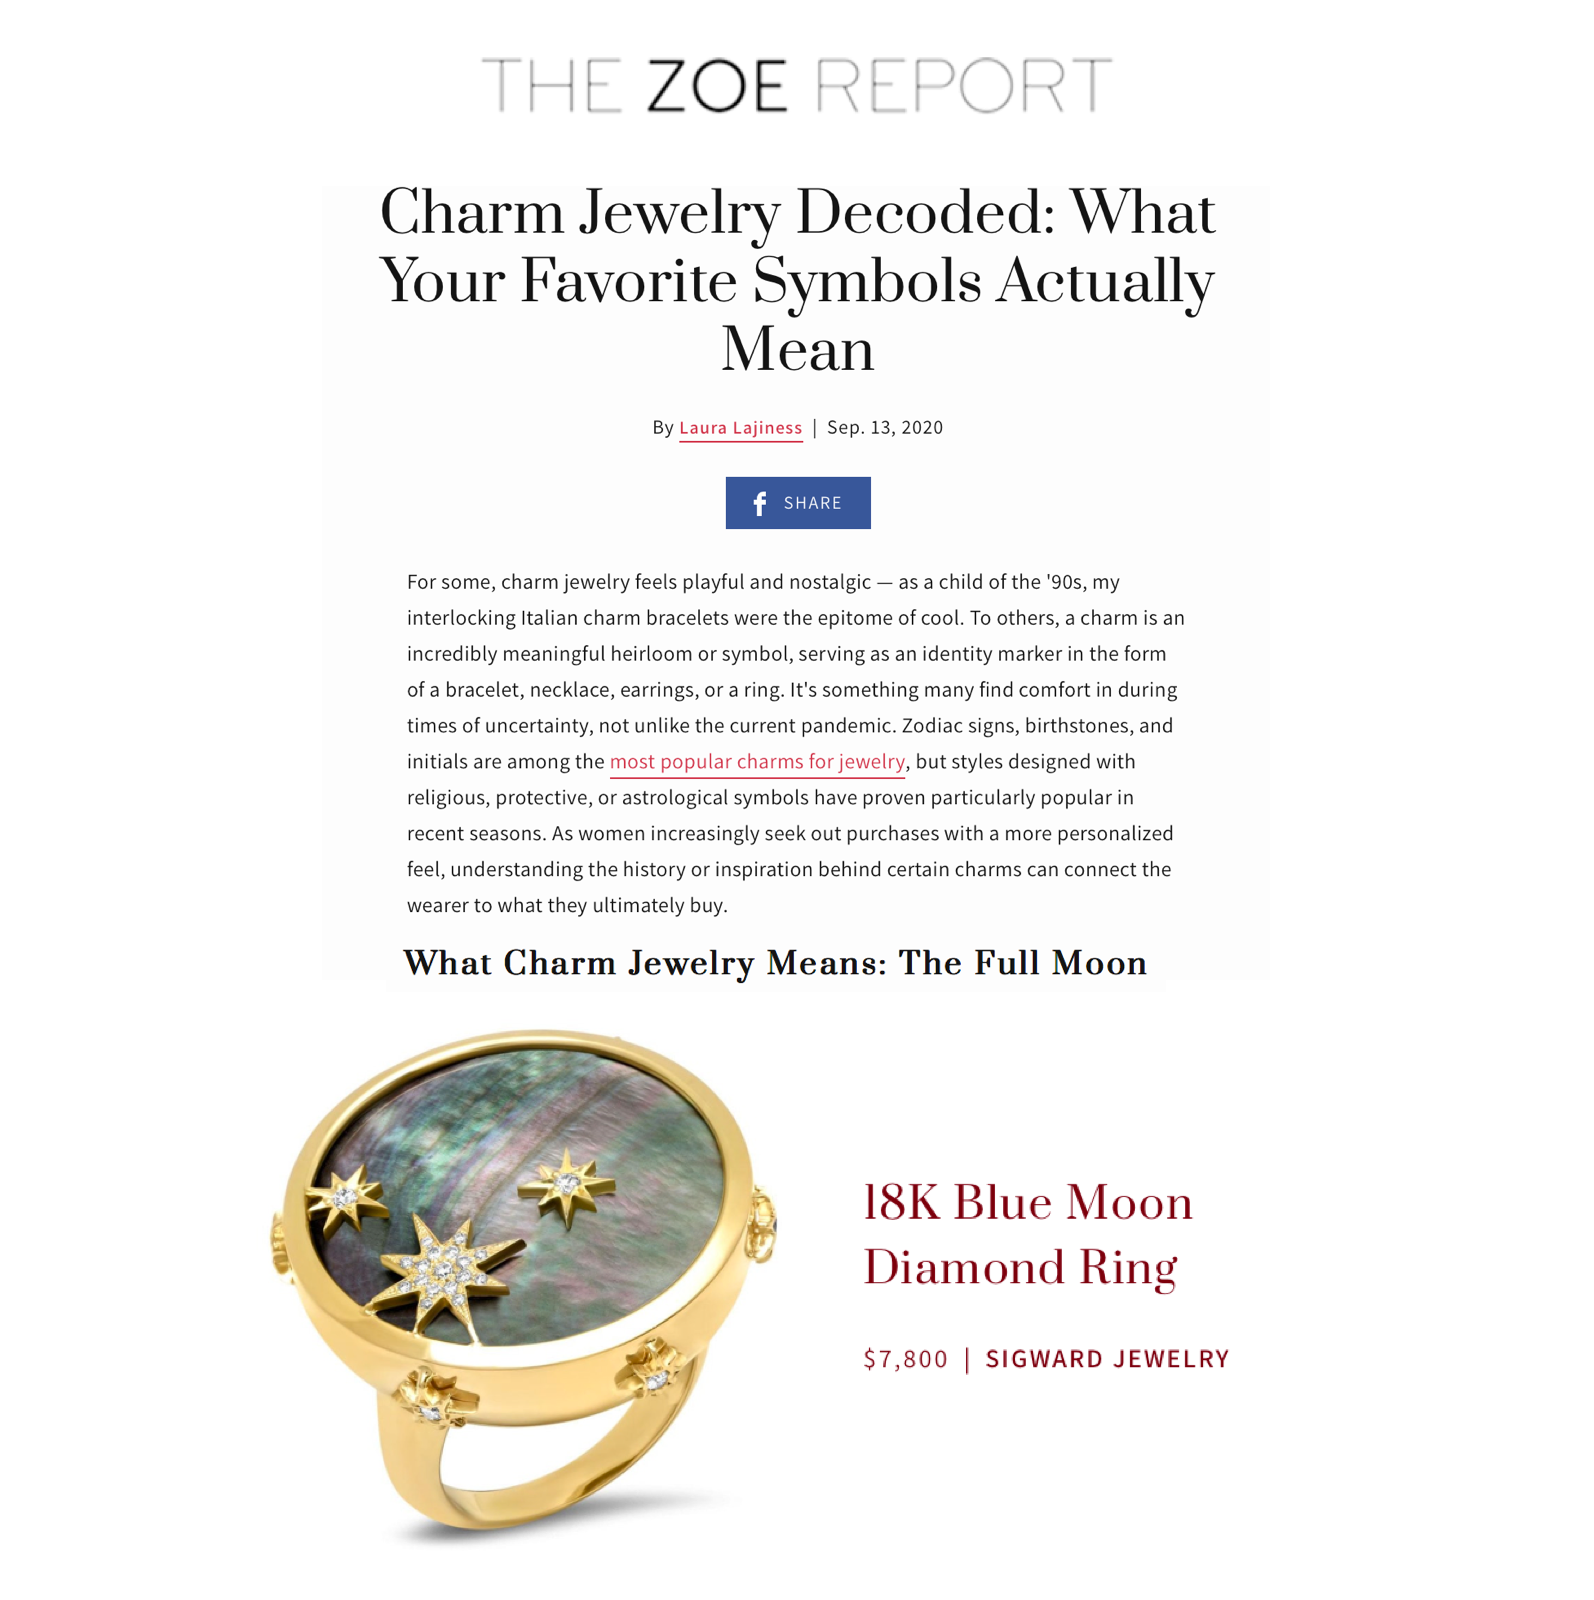 Sig Ward Jewelry as featured on The Zoe Report